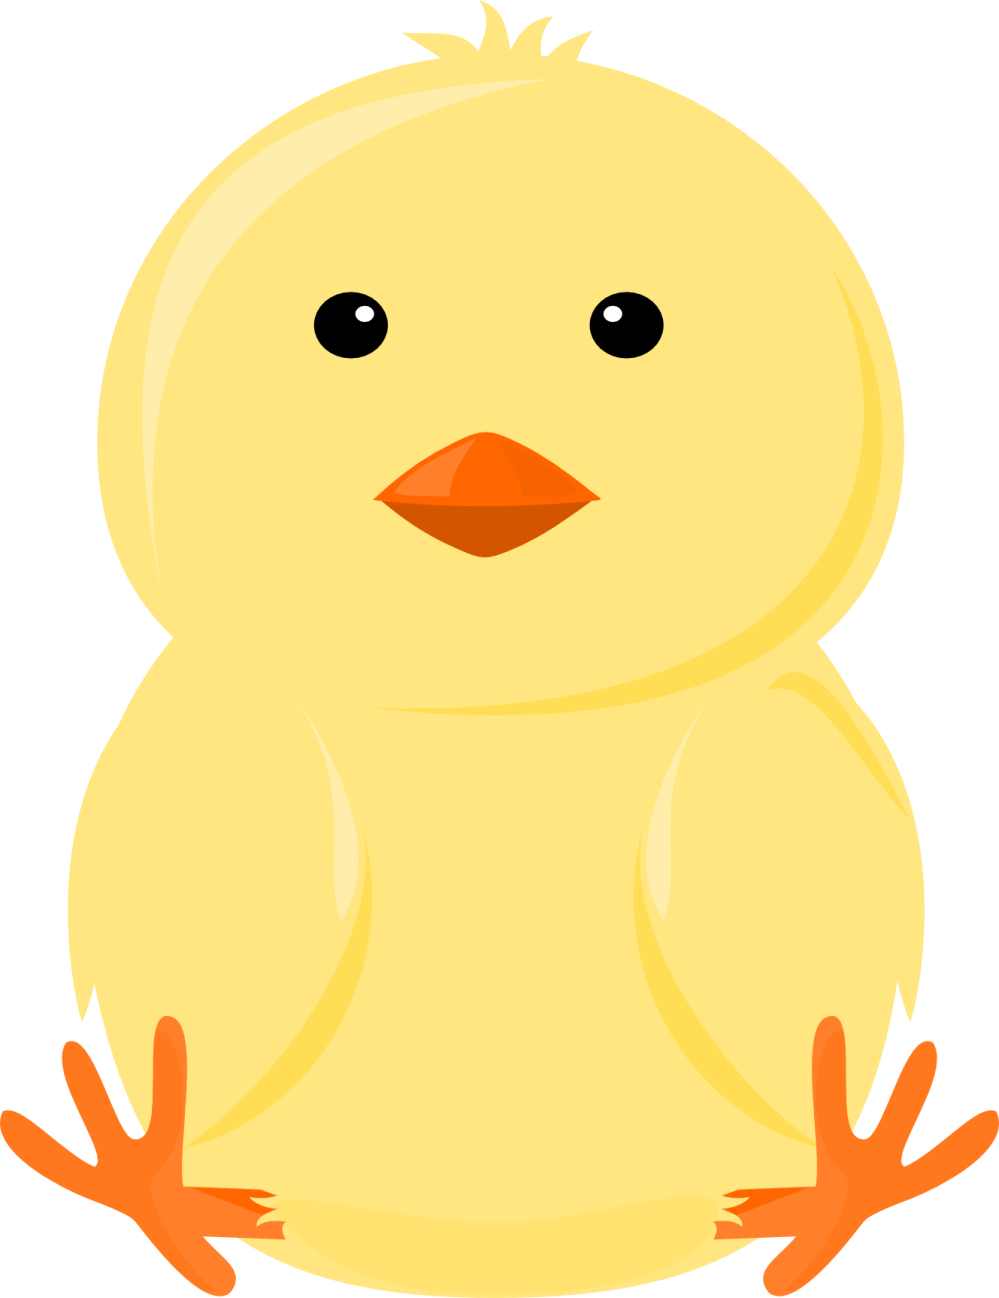 medium resolution of chicken clipart transparent background on the farm clip